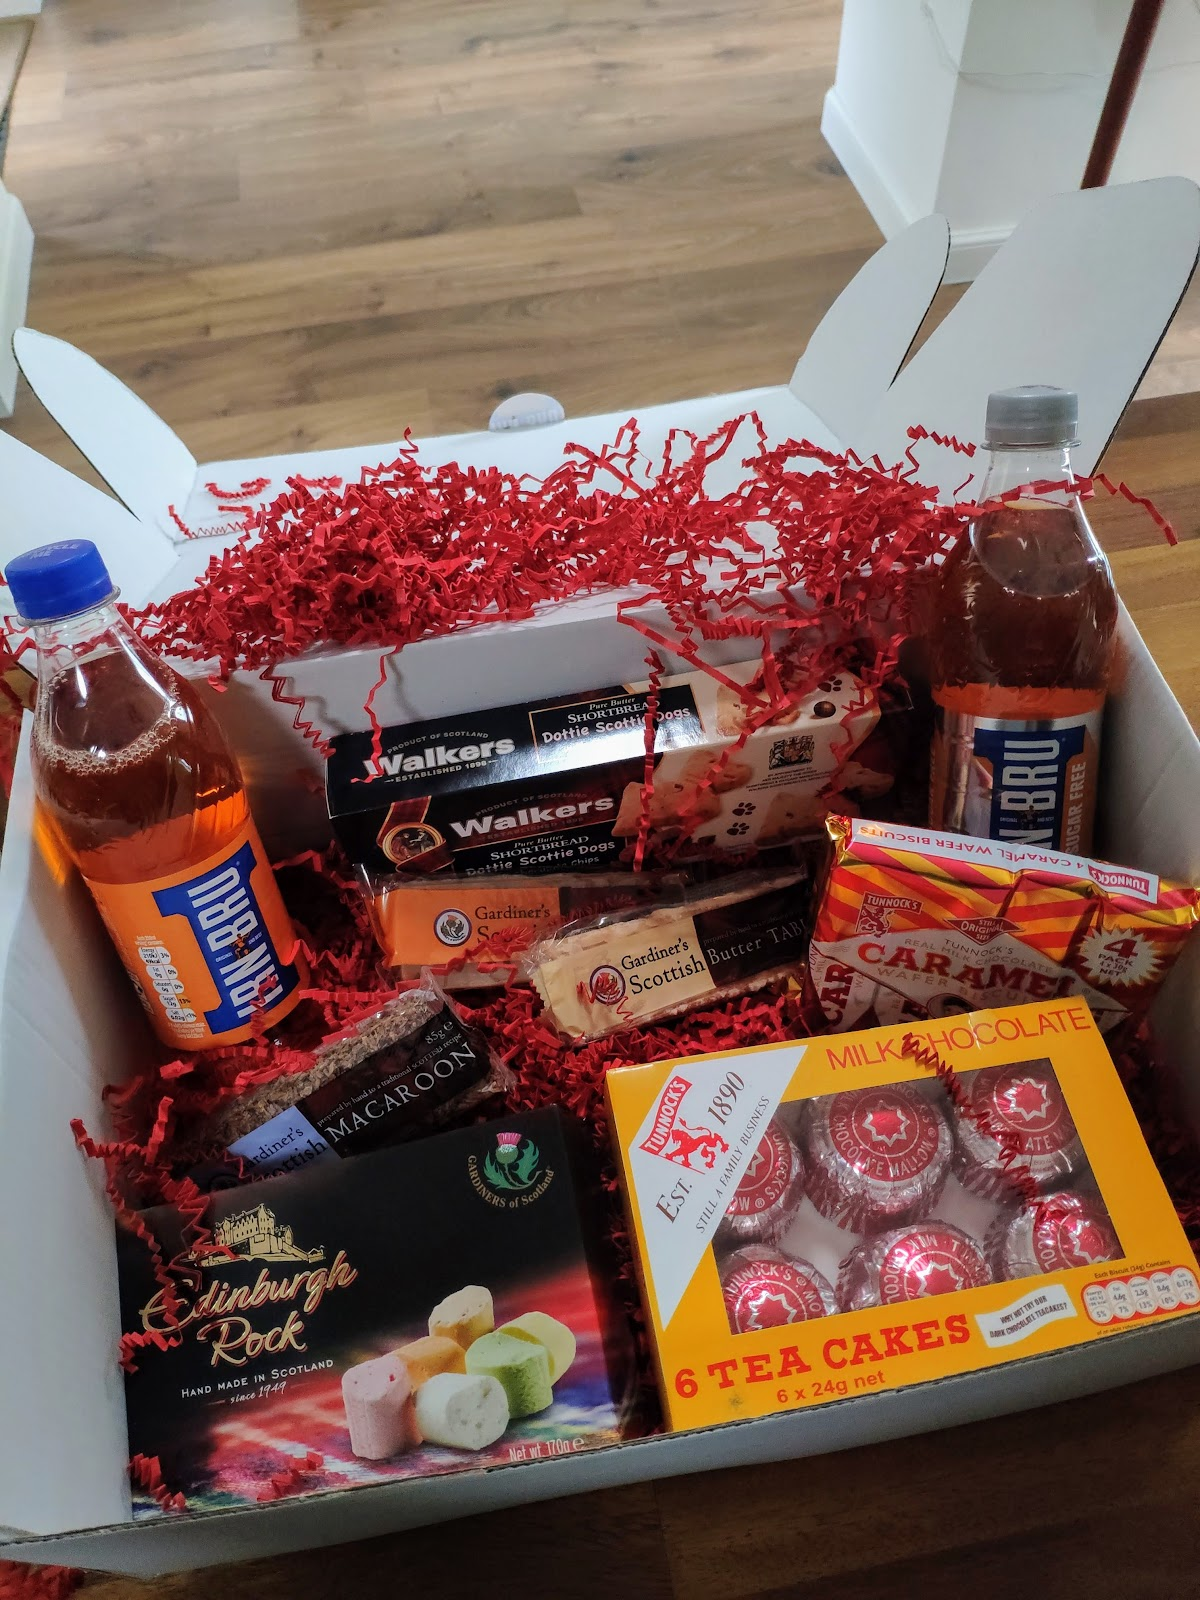 Working From Home: 7 fun (and tasty) ideas for care packages for your people